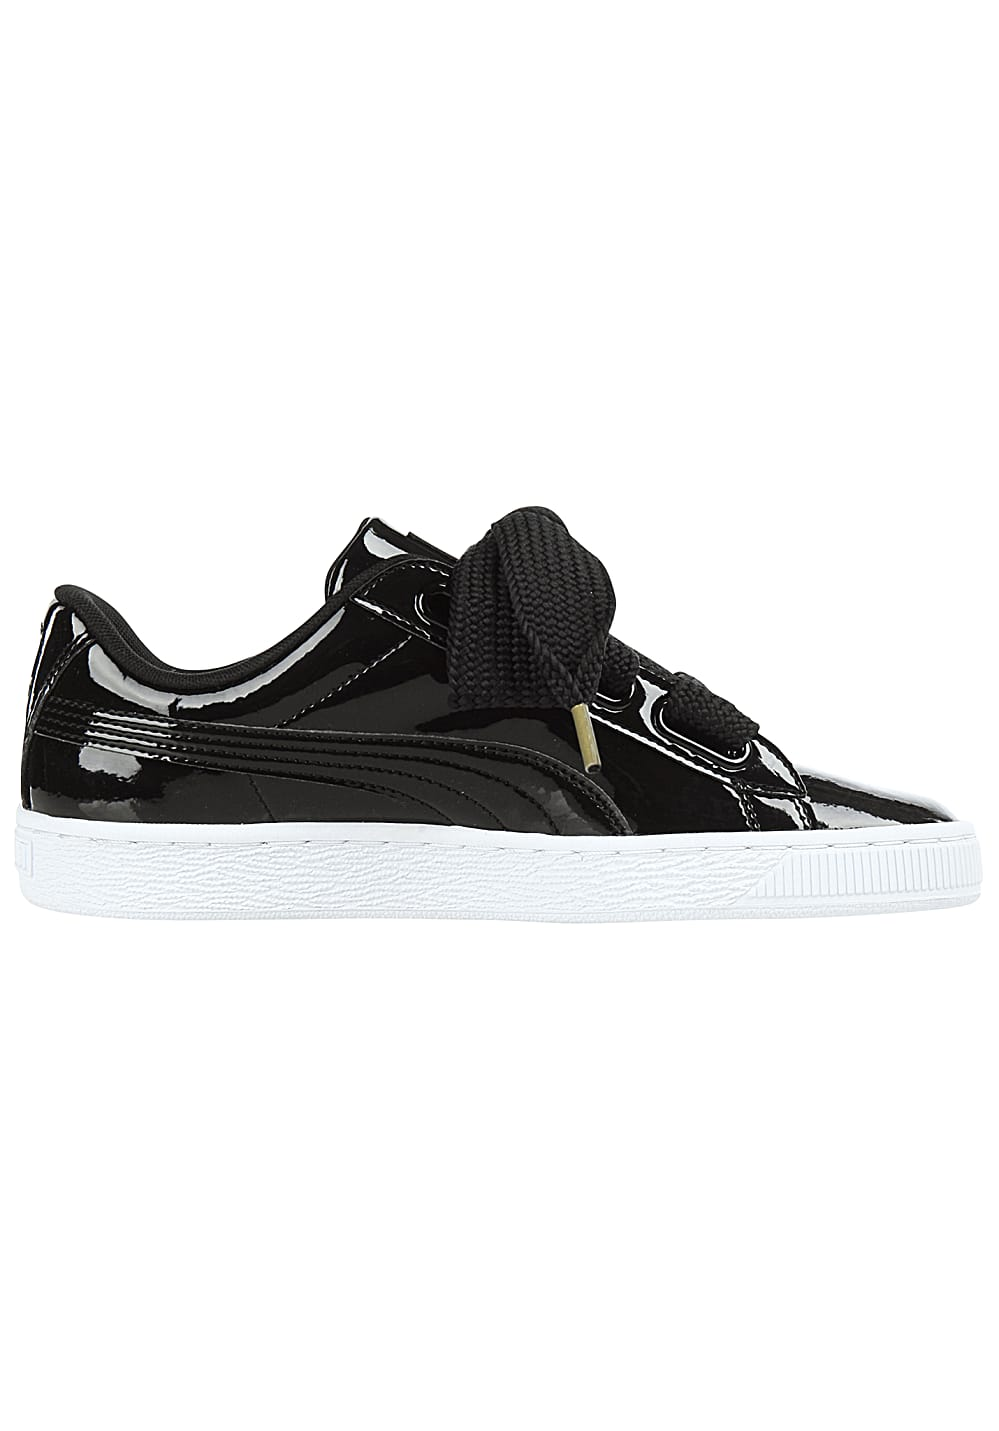 Next. Puma. Basket Heart Patent - Sneakers for Women. €86.47. incl. VAT  plus shipping costs. Black White c21bd87537